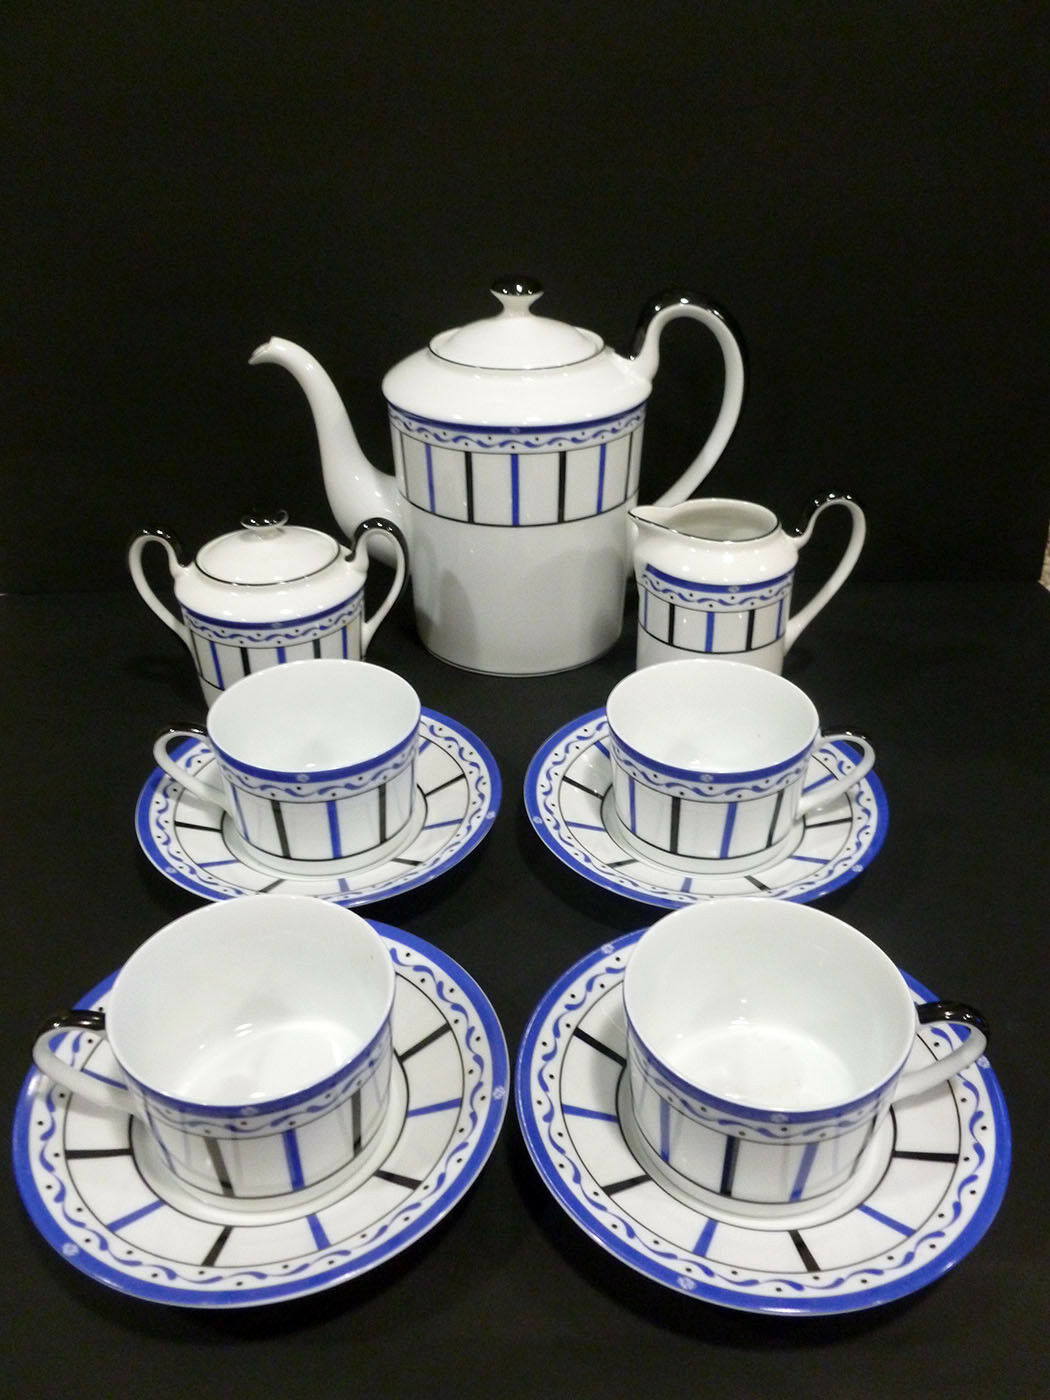 CHRISTIAN DIR PORCELAIN JUNOESQUE UNIQUE DESIGN HQ COMPLETE VTG TEAPOT SET 7087